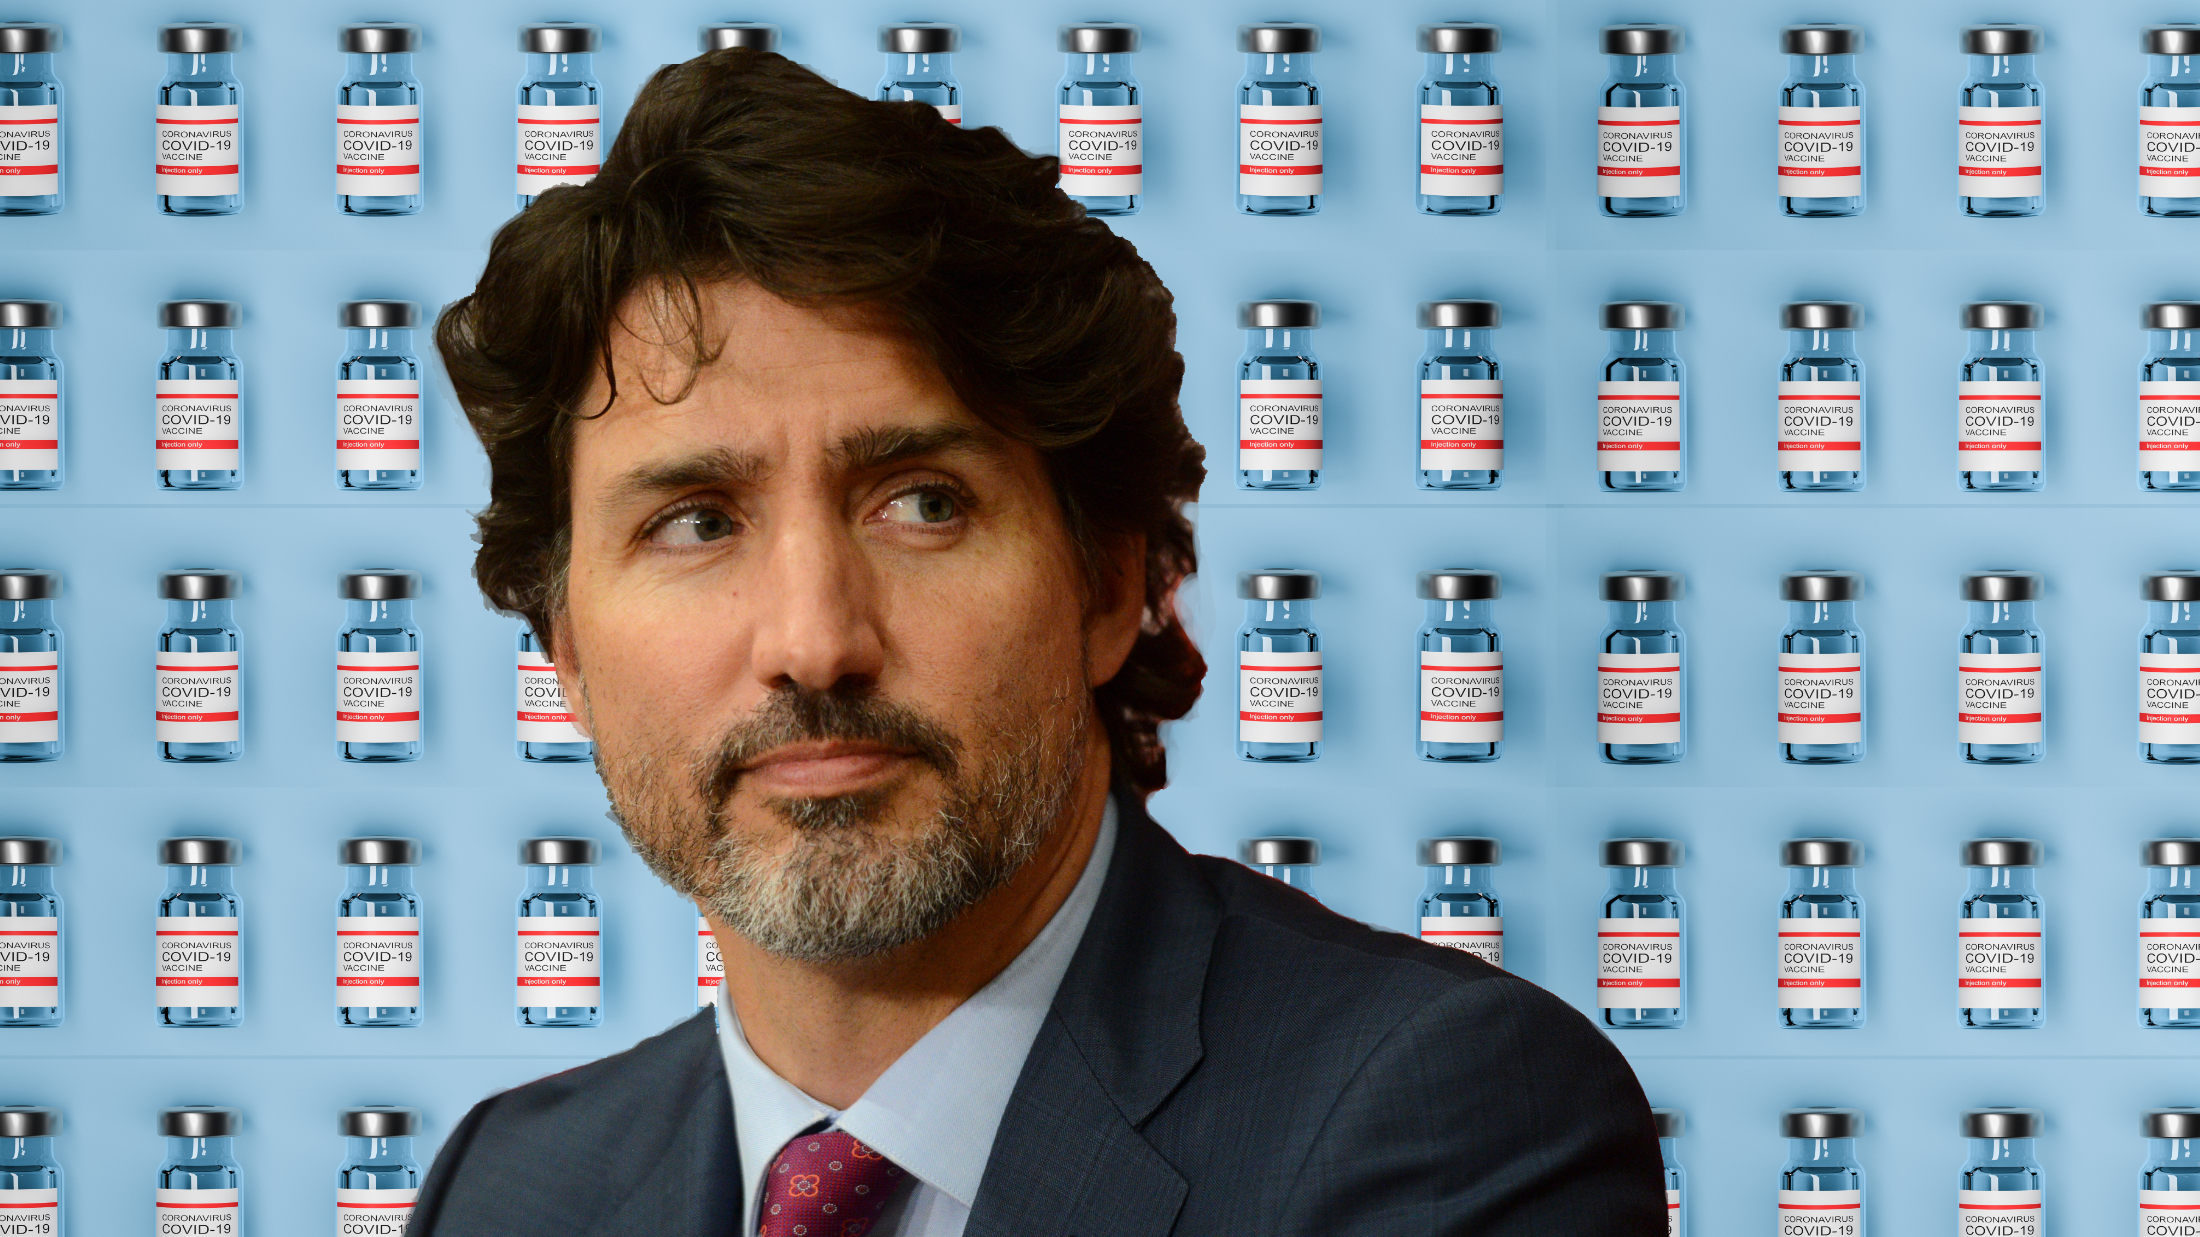 Justin Trudeau is letting Canada get played by Big Pharma